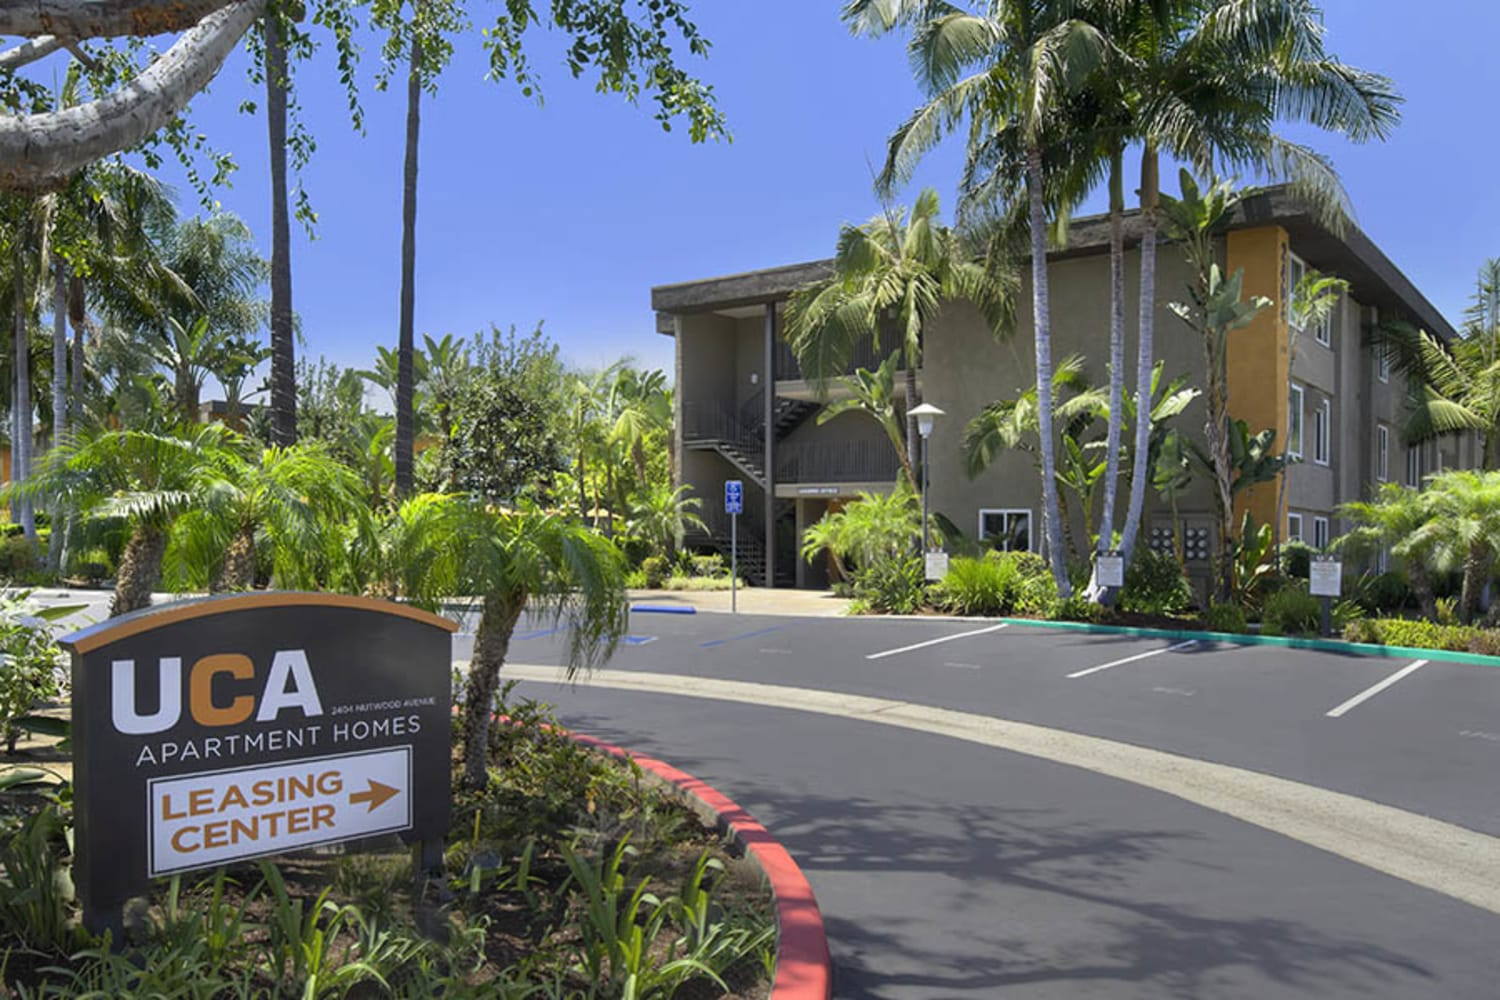 UCA Apartment Homes in Fullerton, California, offer beautifully maintained grounds